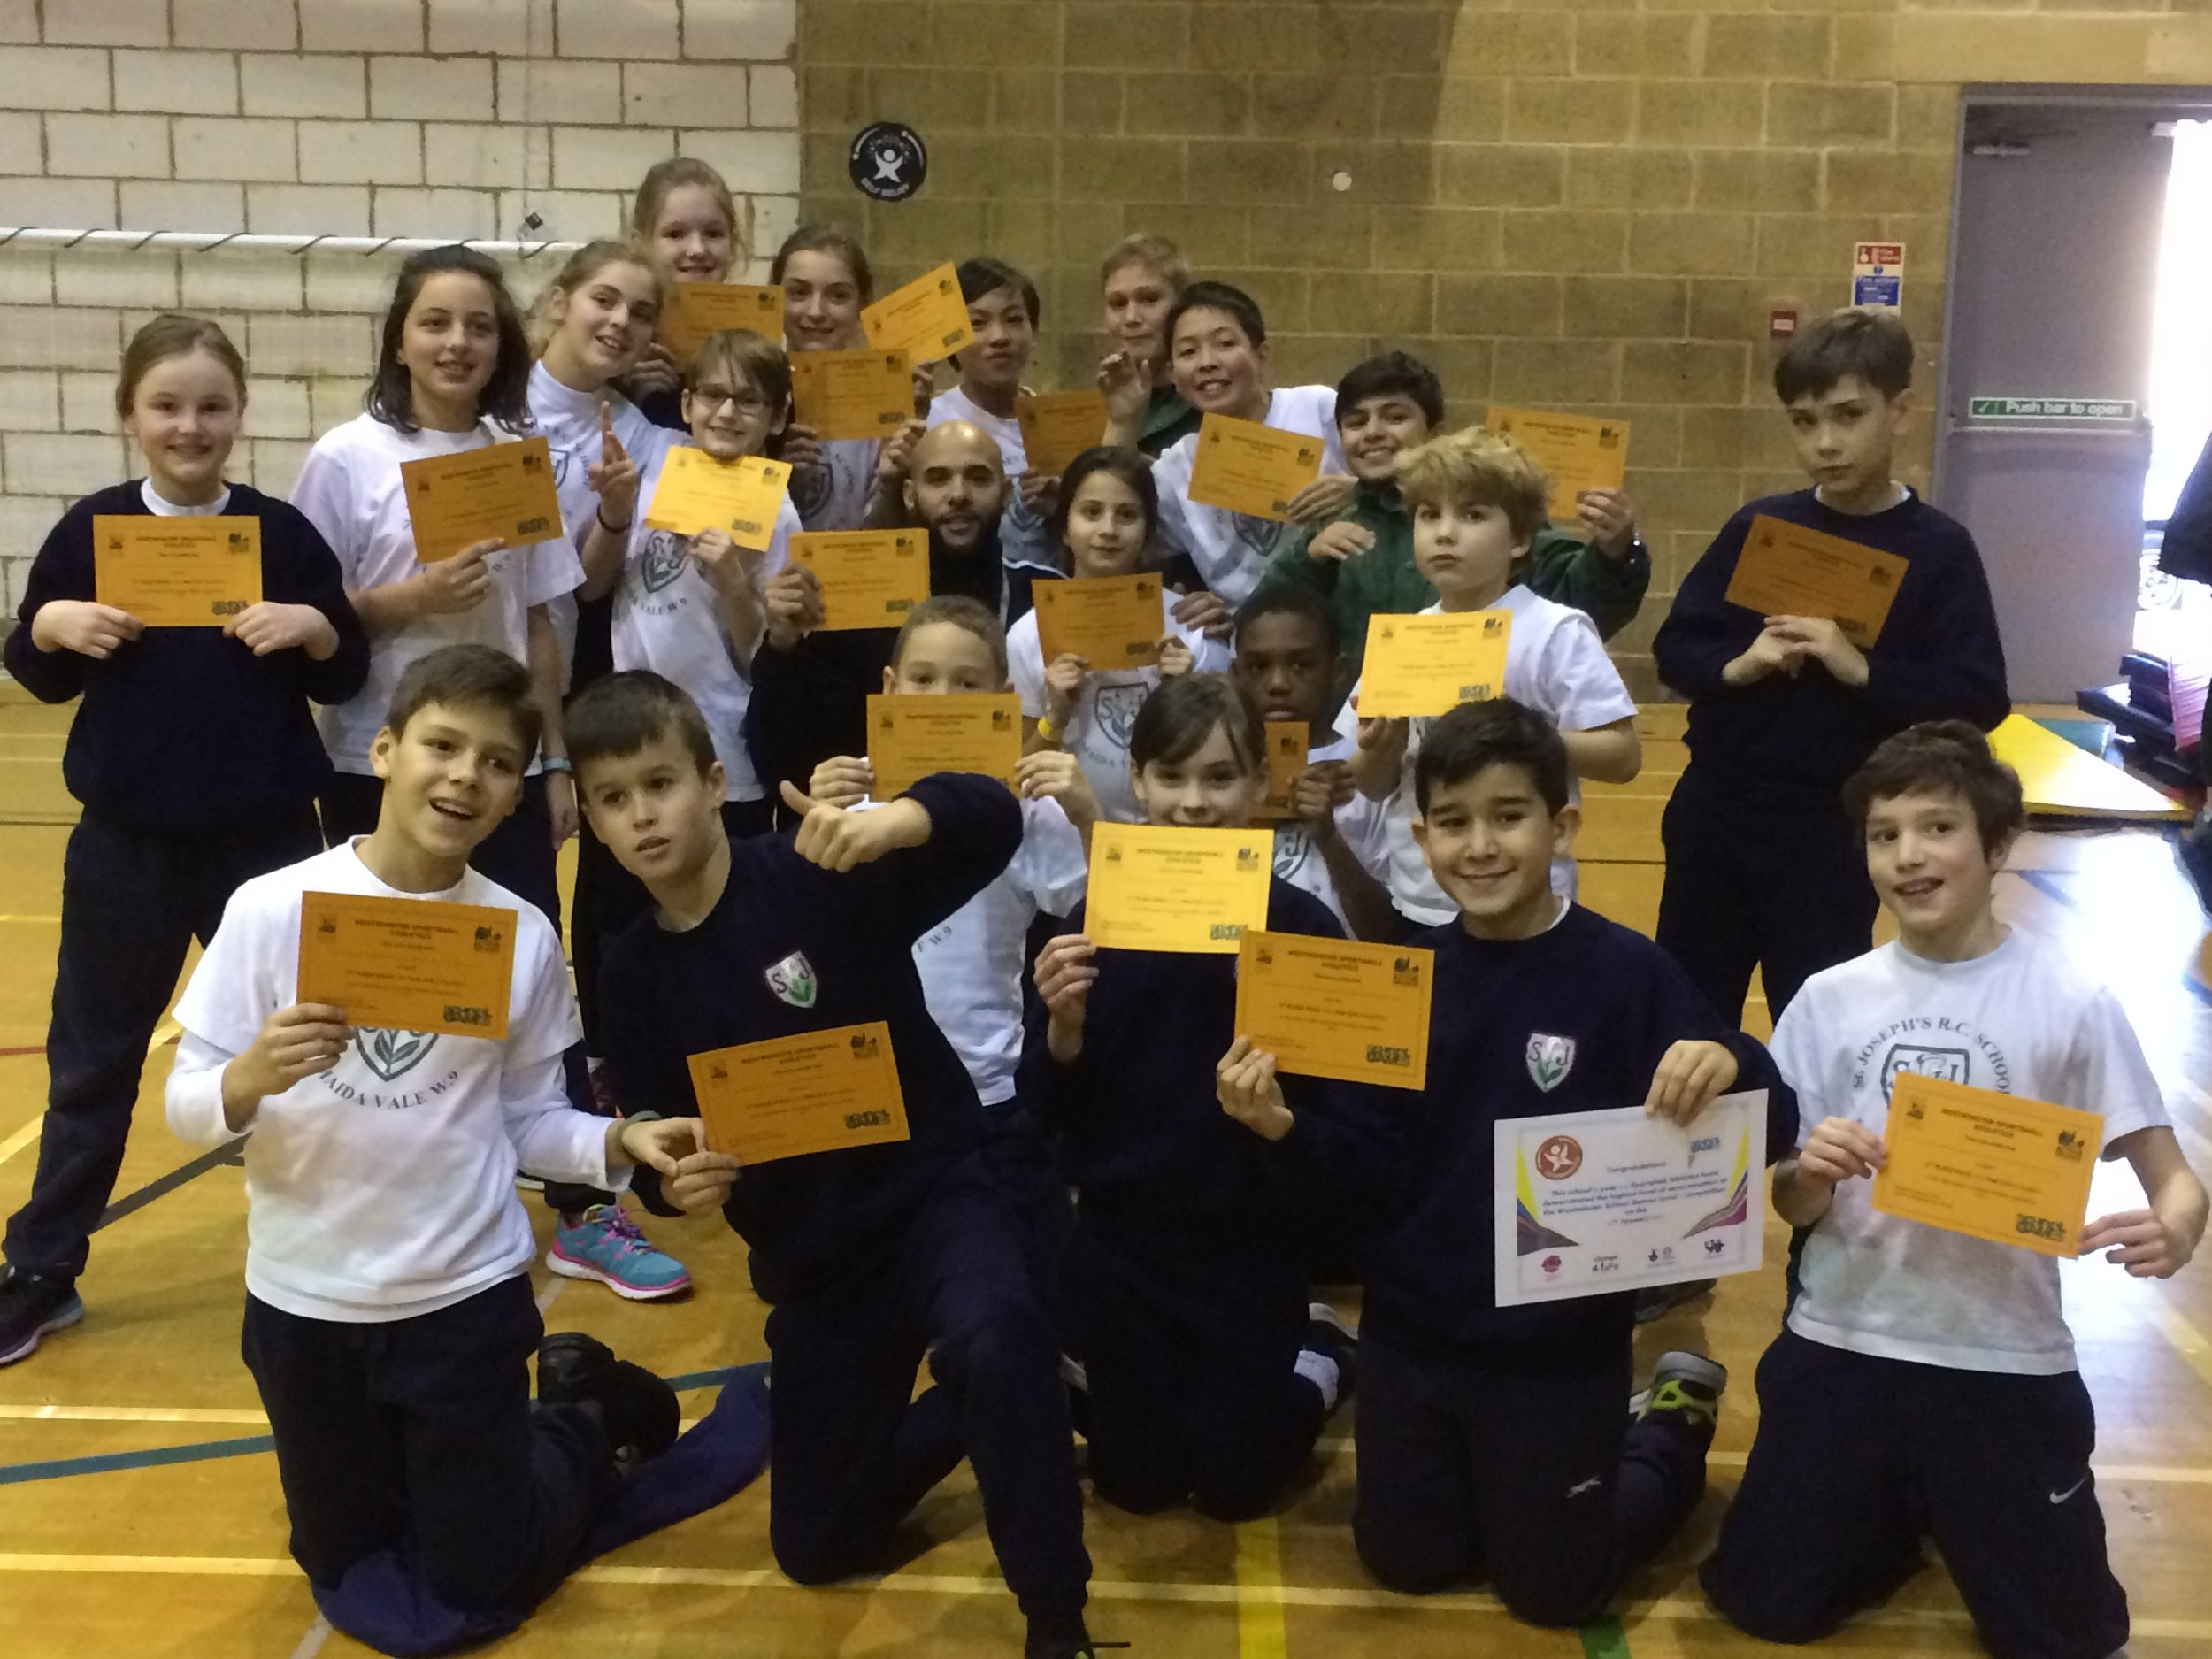 St. Joseph's with their gold winning certificate.